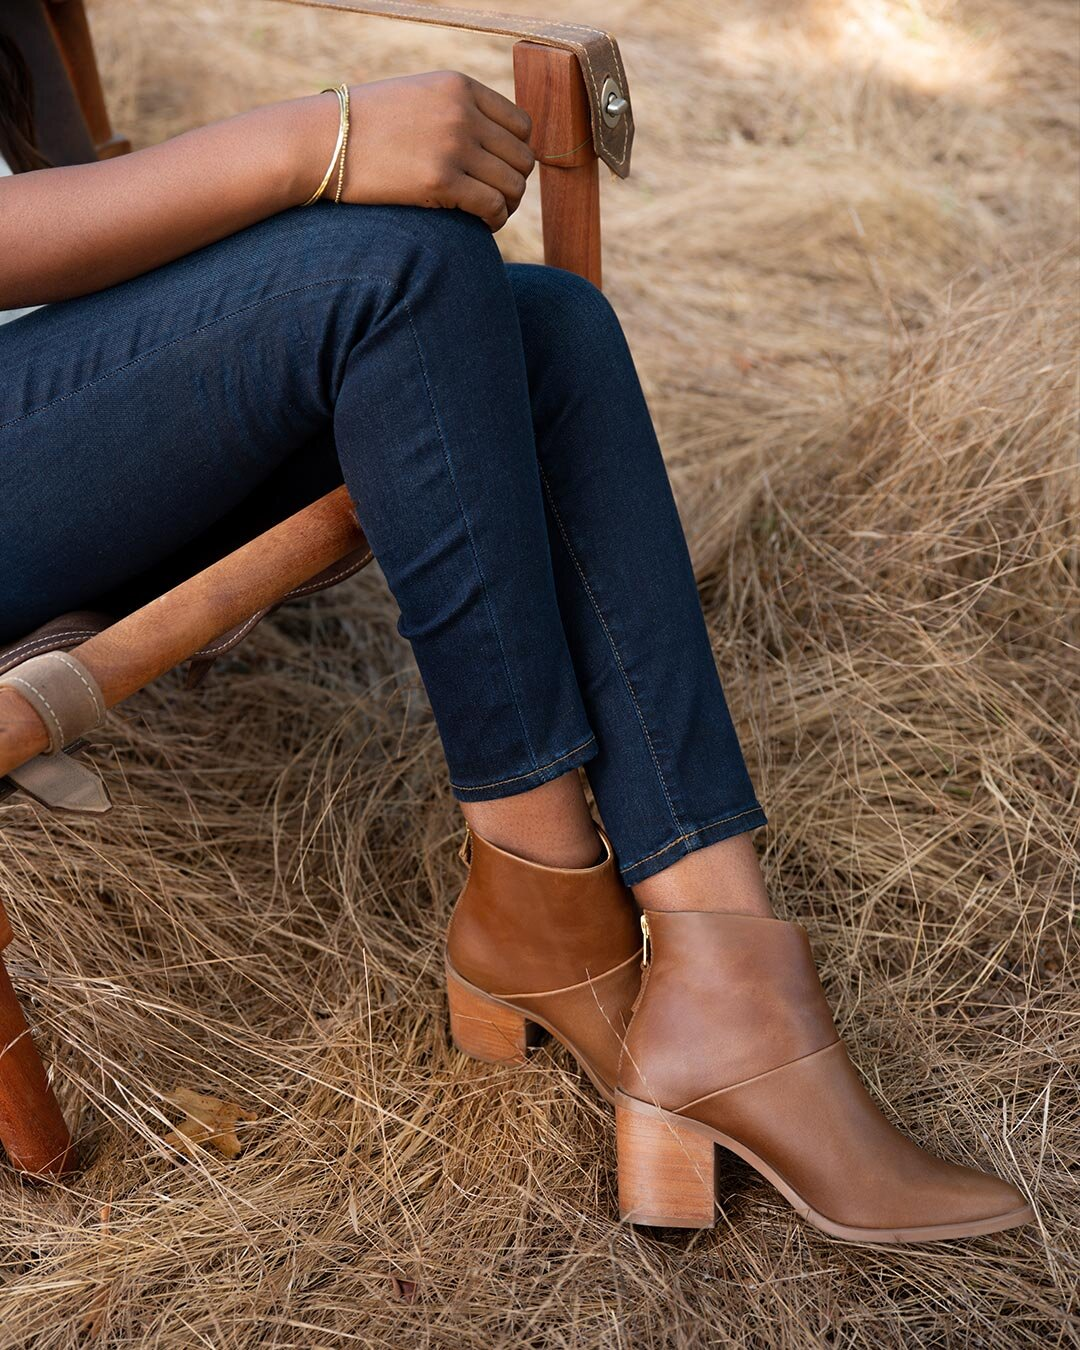 The Ethical Edit: 10 Stylish Boots To